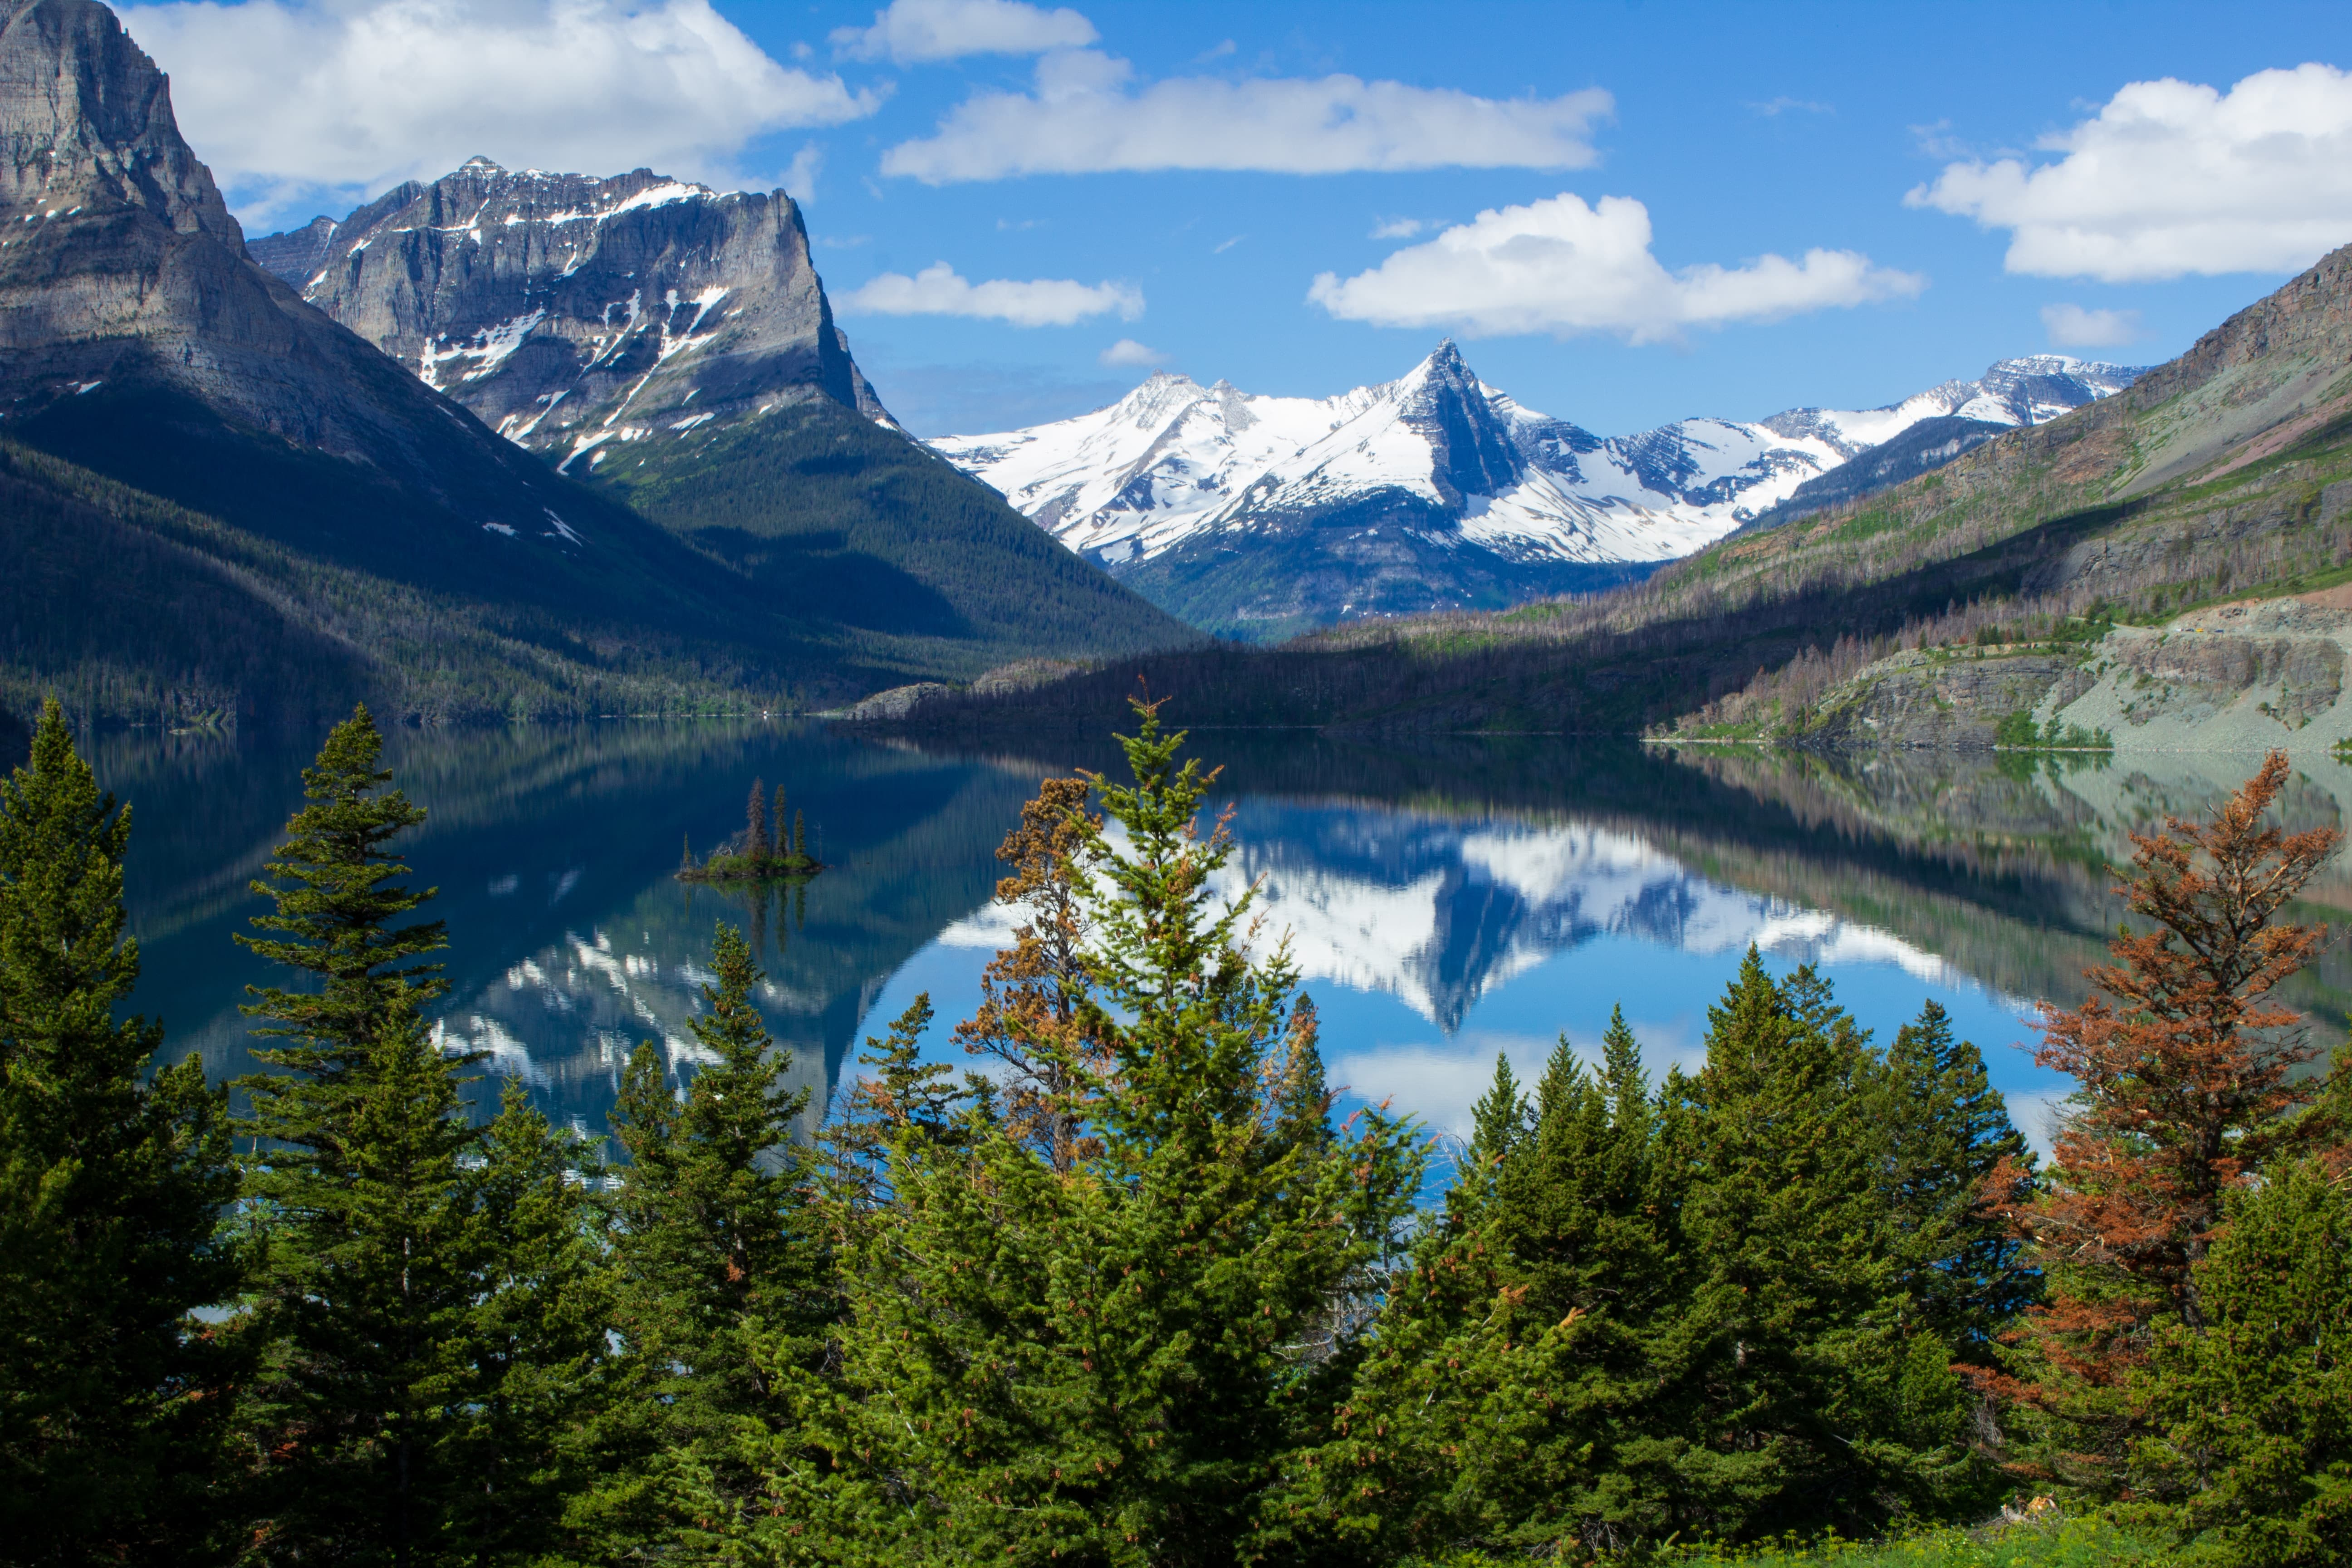 Camping World S Guide To Rving Glacier National Park Camping World